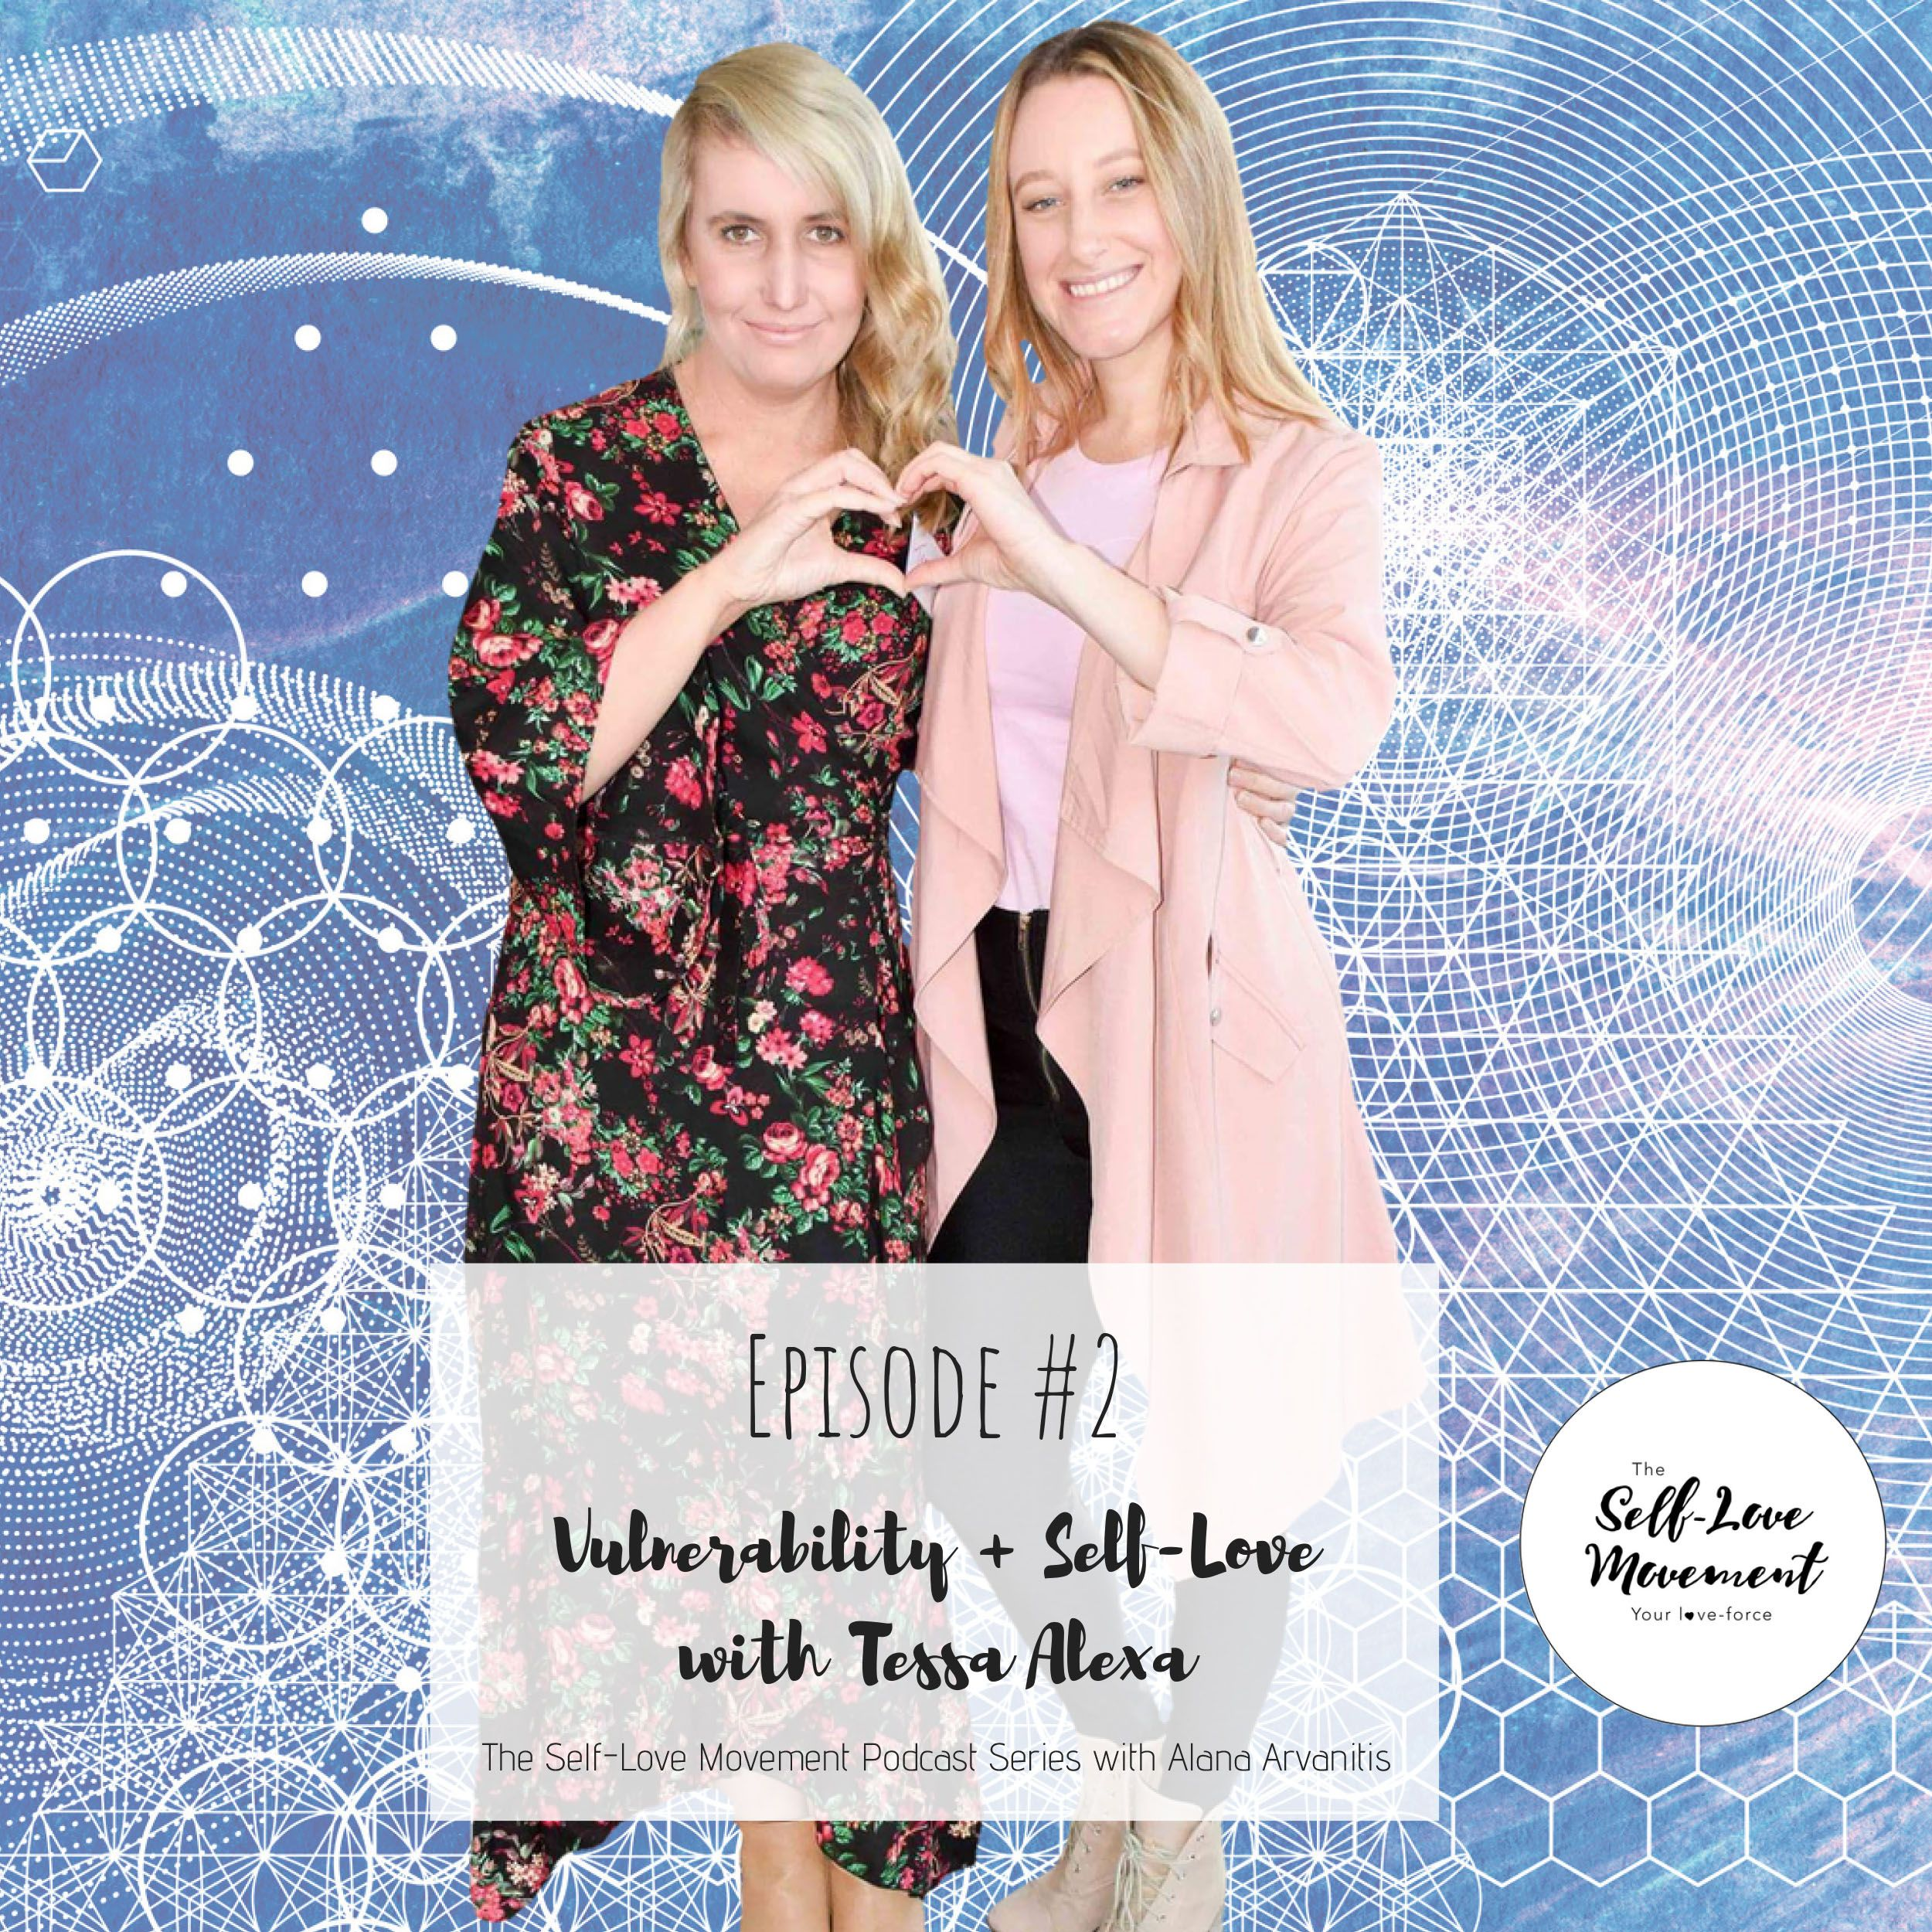 Episode #2 Vulnerability & Self-Love with Tessa Alexa